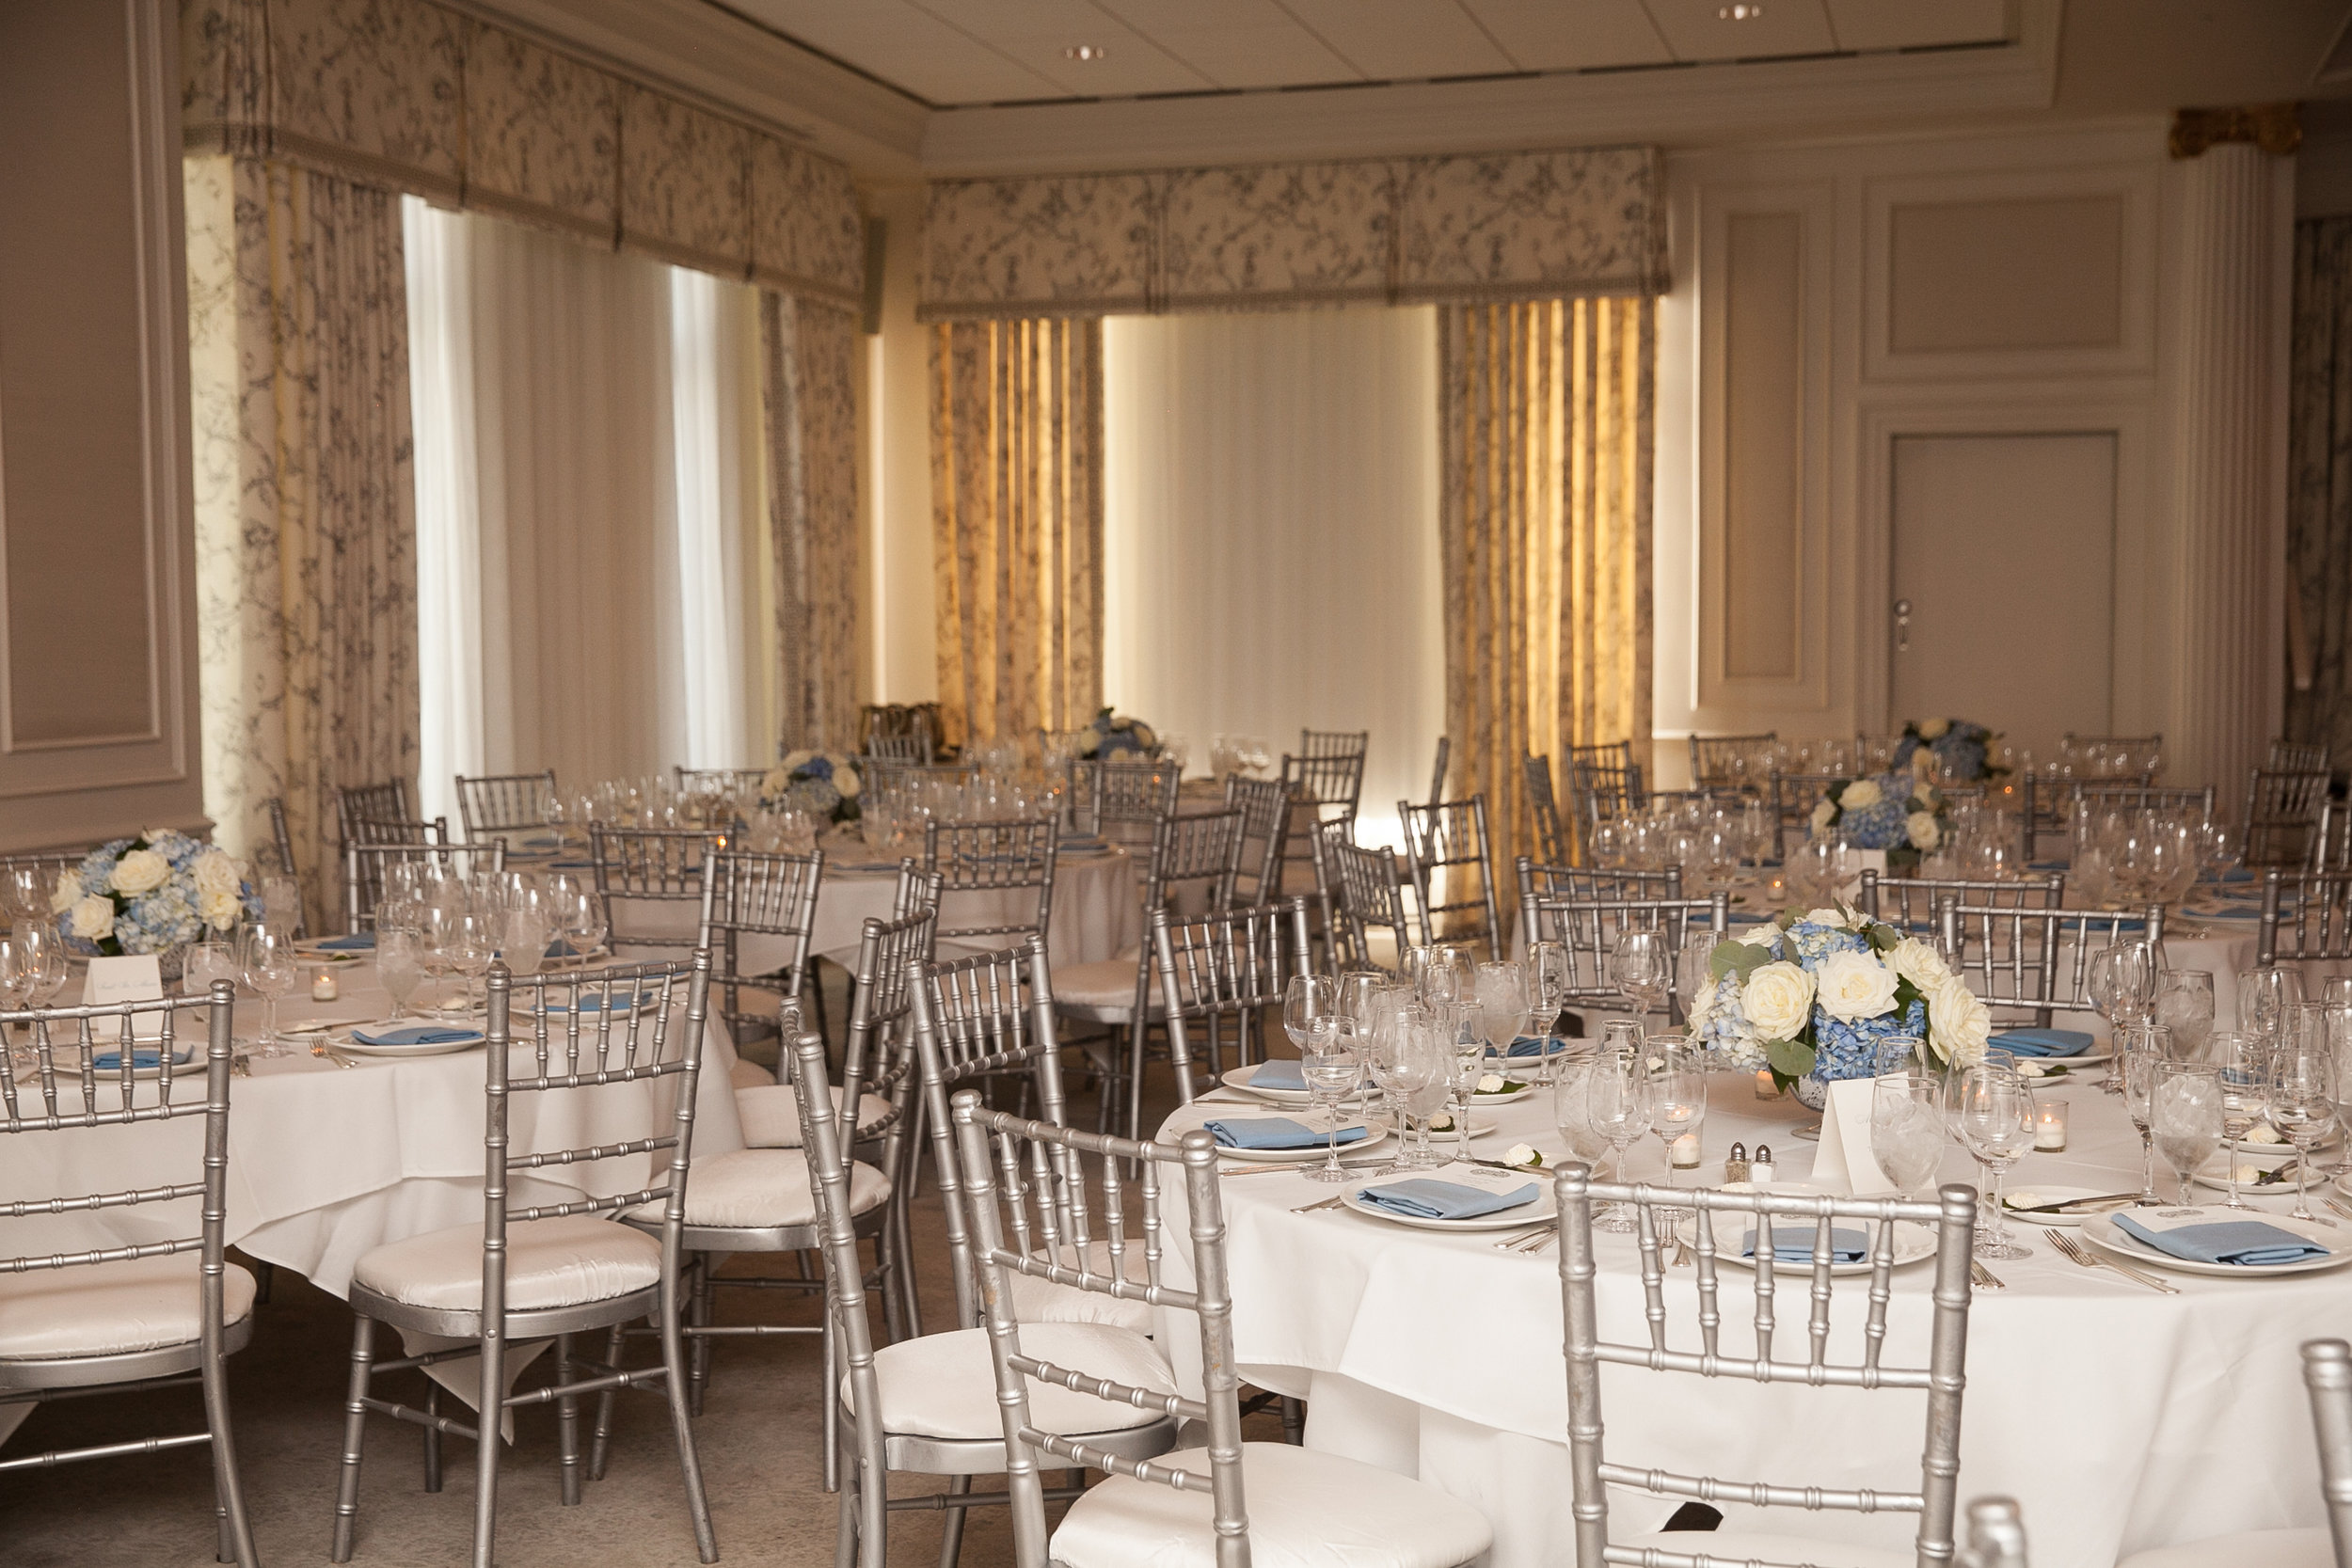 Atelier Ashley Flowers + Dusty Blue + Borrowed and Blue Photography + Congressional Country Club + DC wedding + low centerpieces + round centerpieces